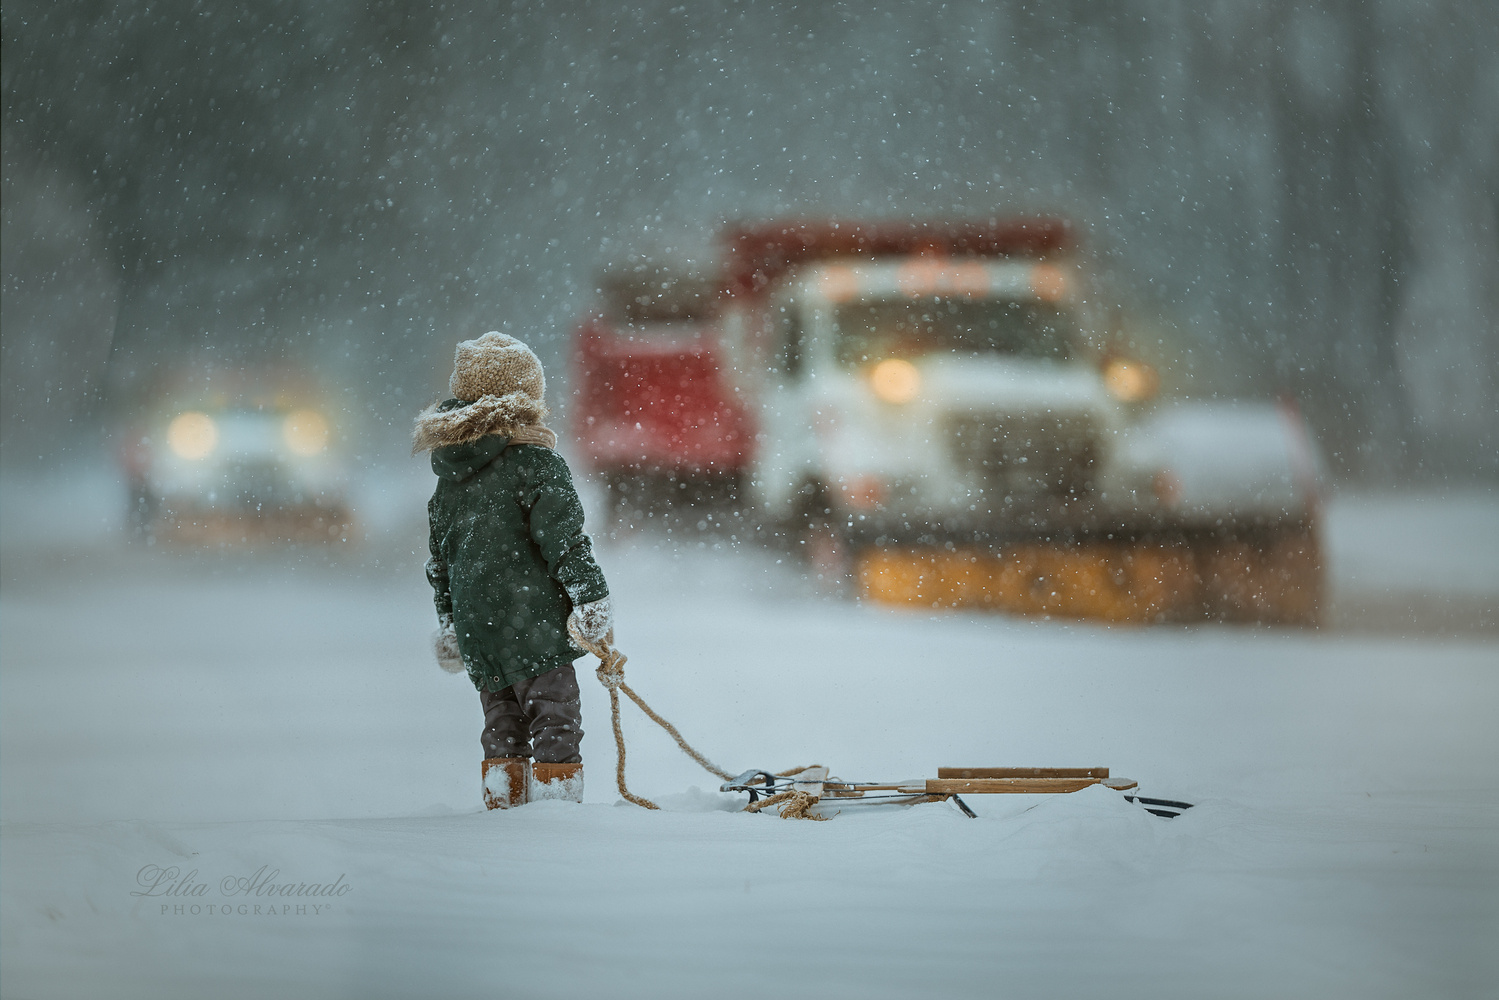 Through The Snow... by Lilia Alvarado